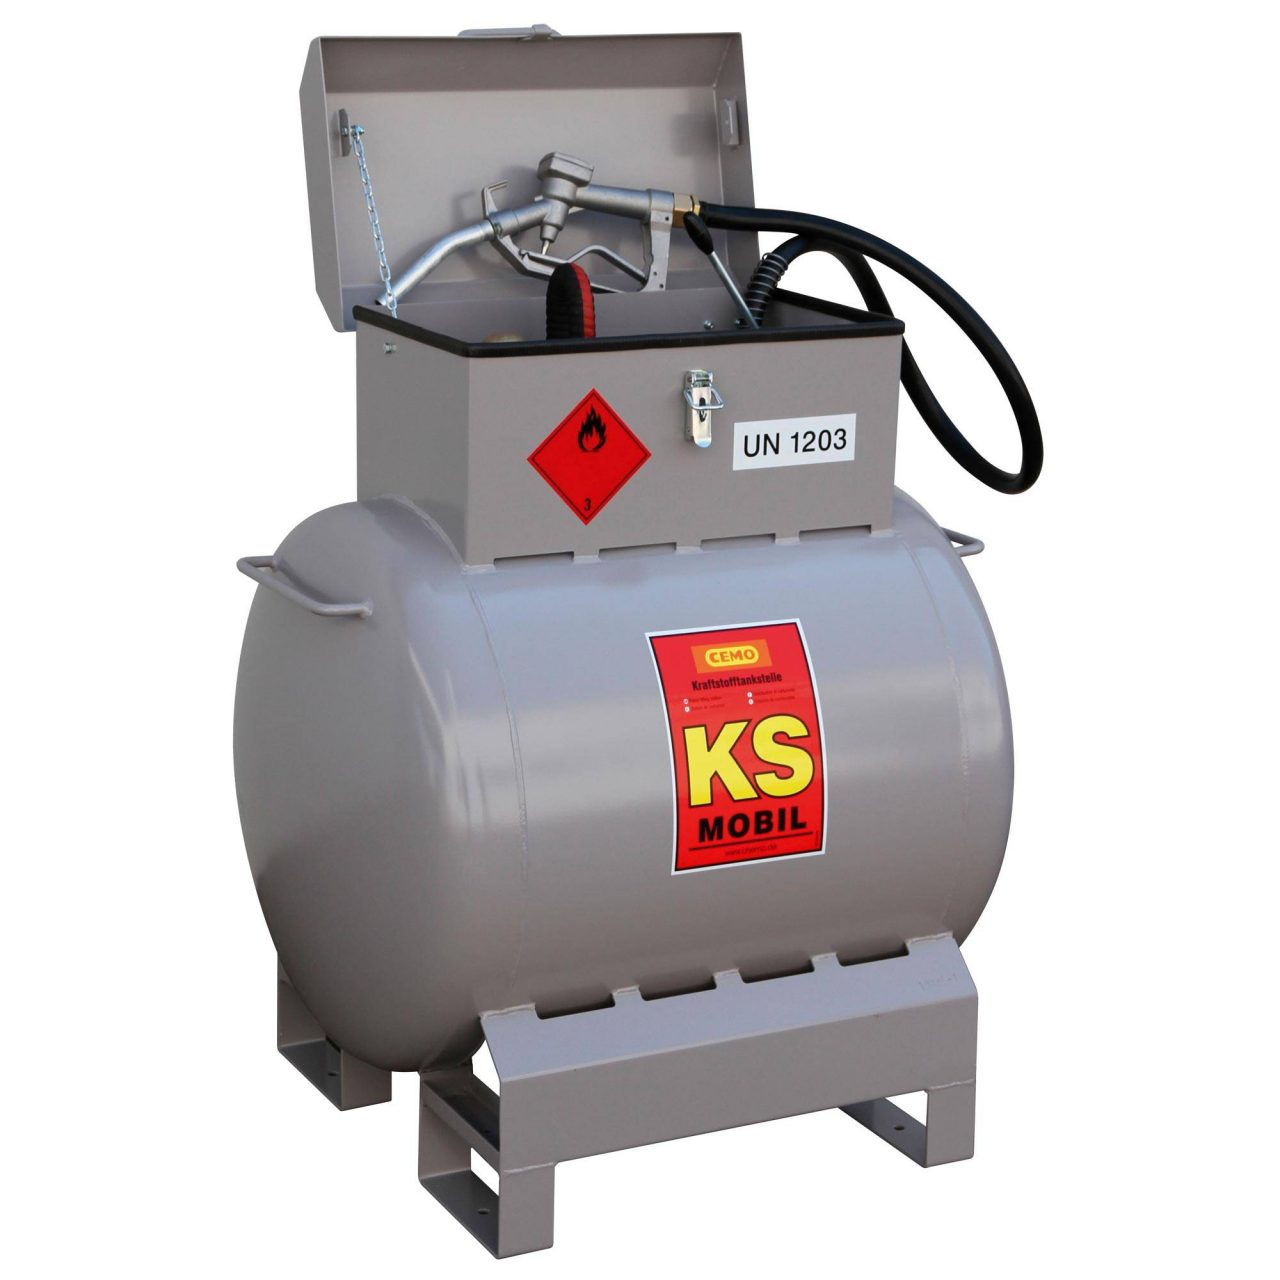 KS-mobile 200 litre